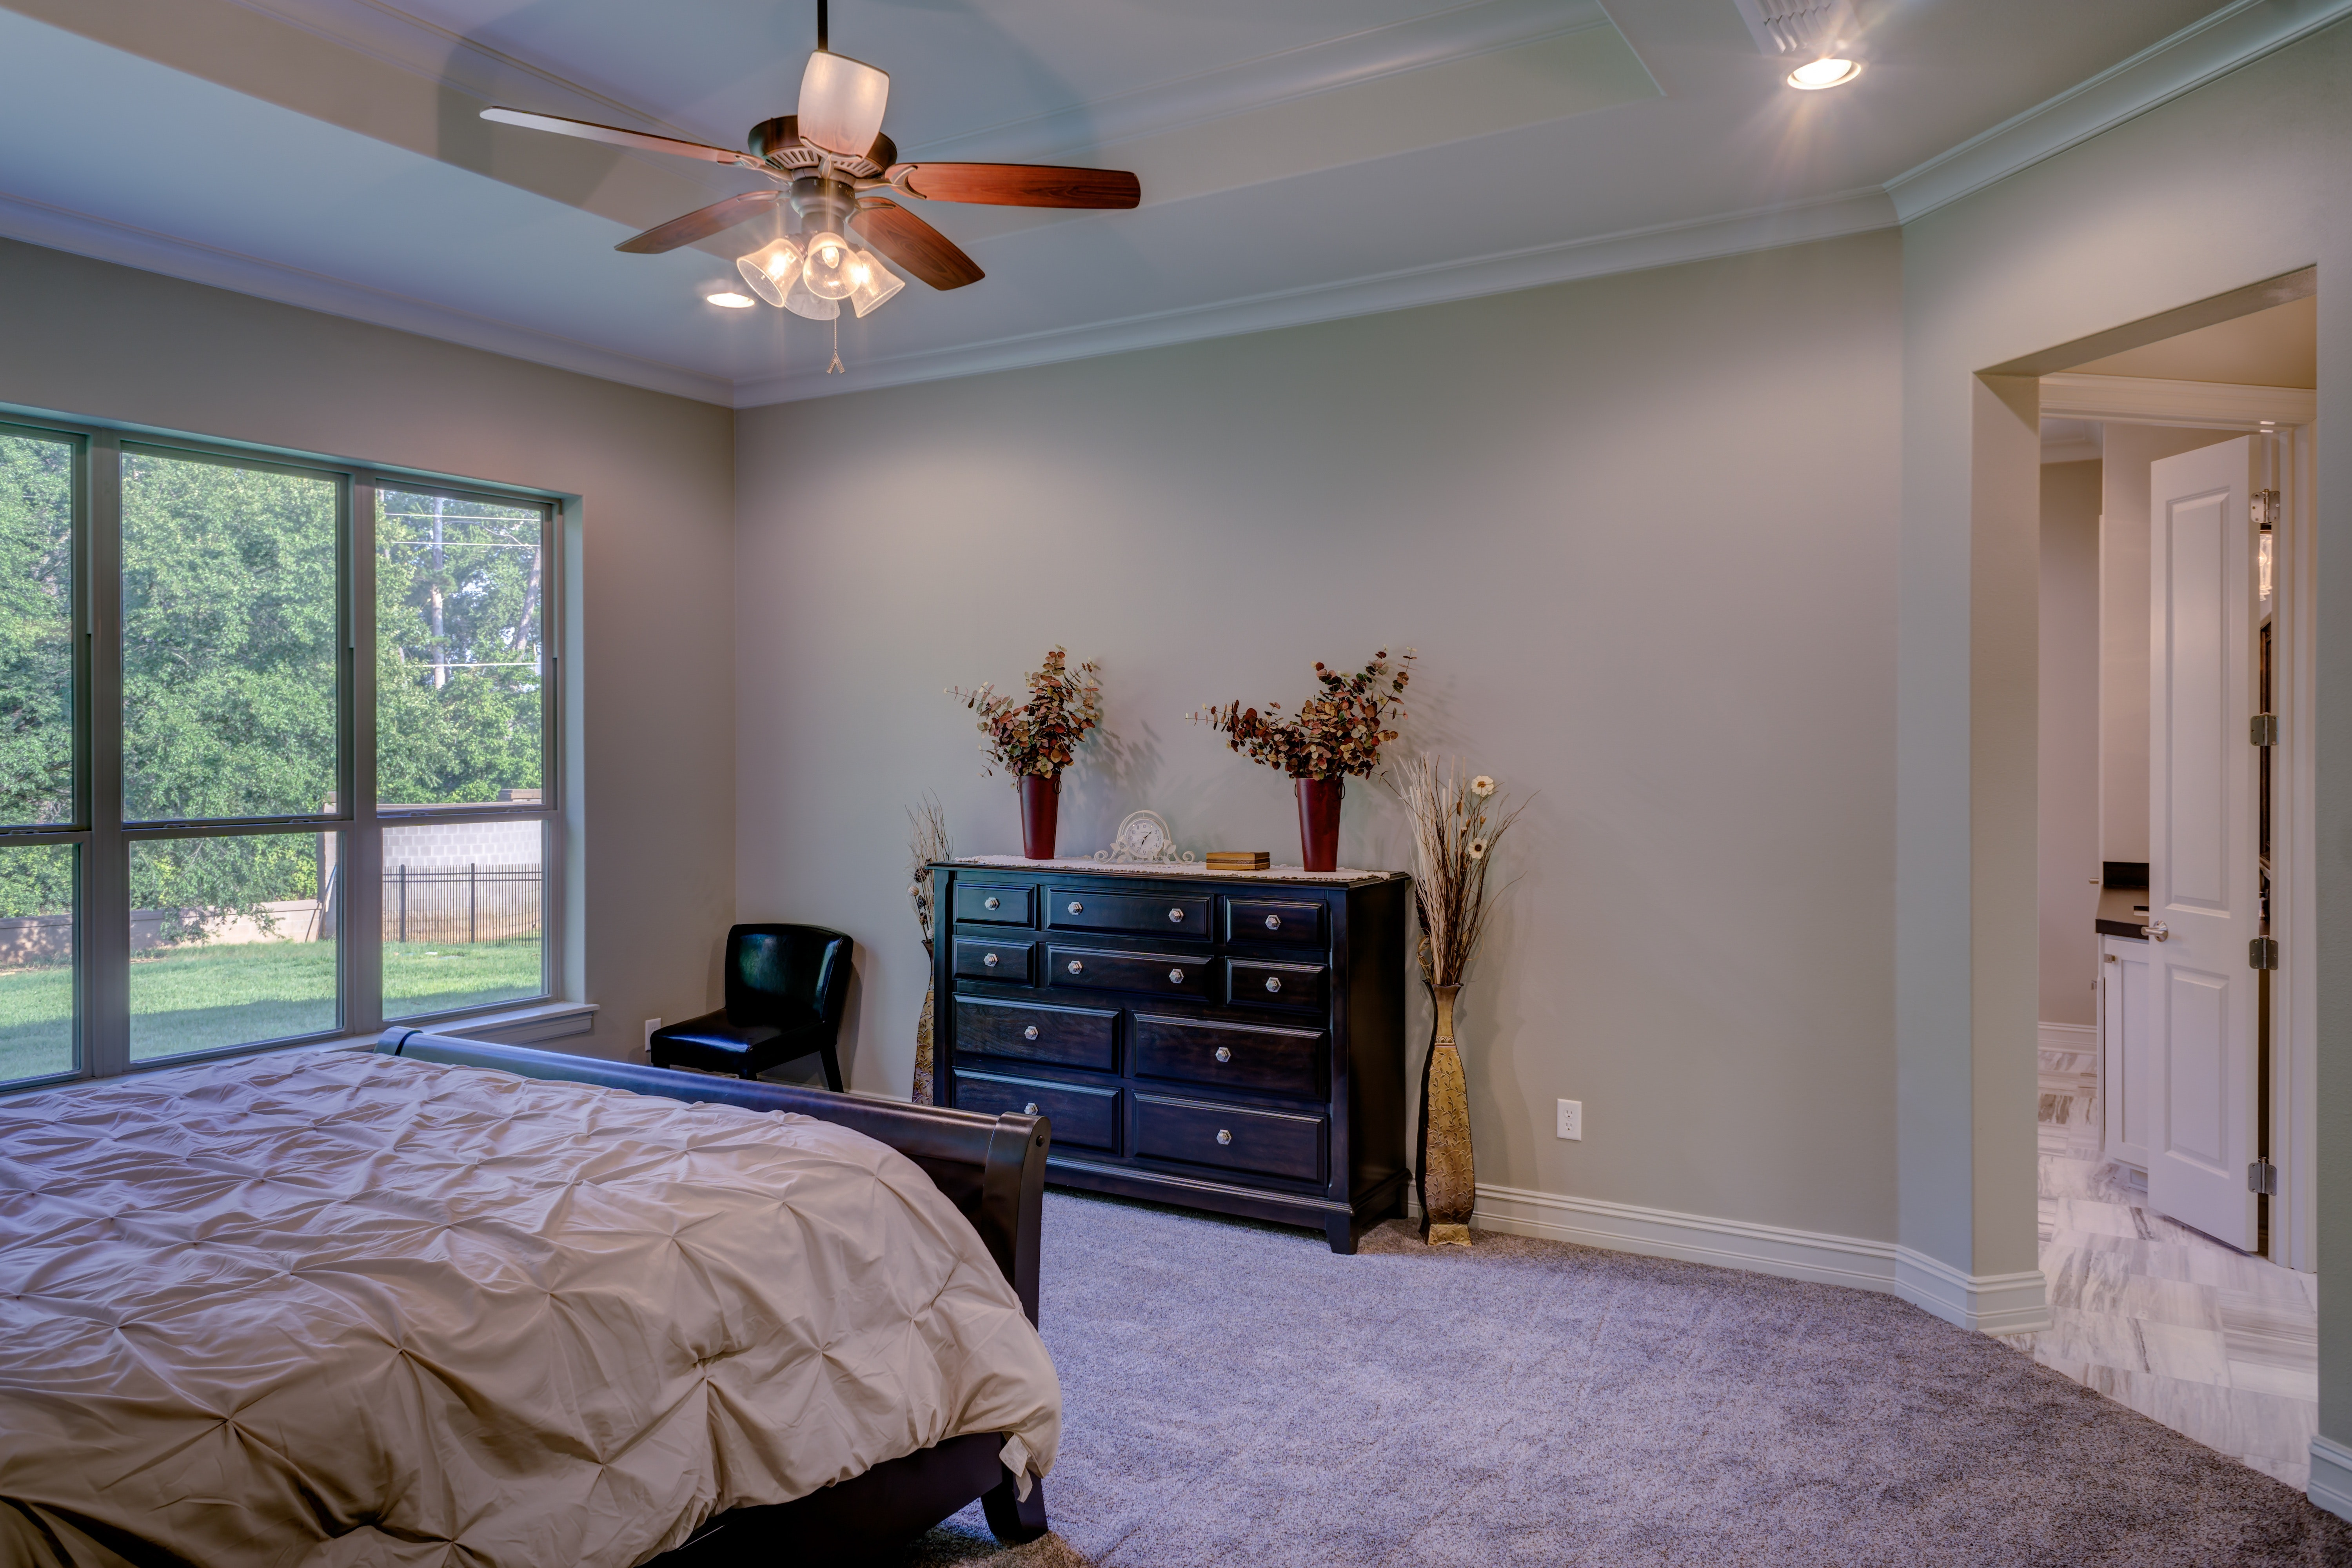 Exceptionnel Bedroom Ceiling Fans